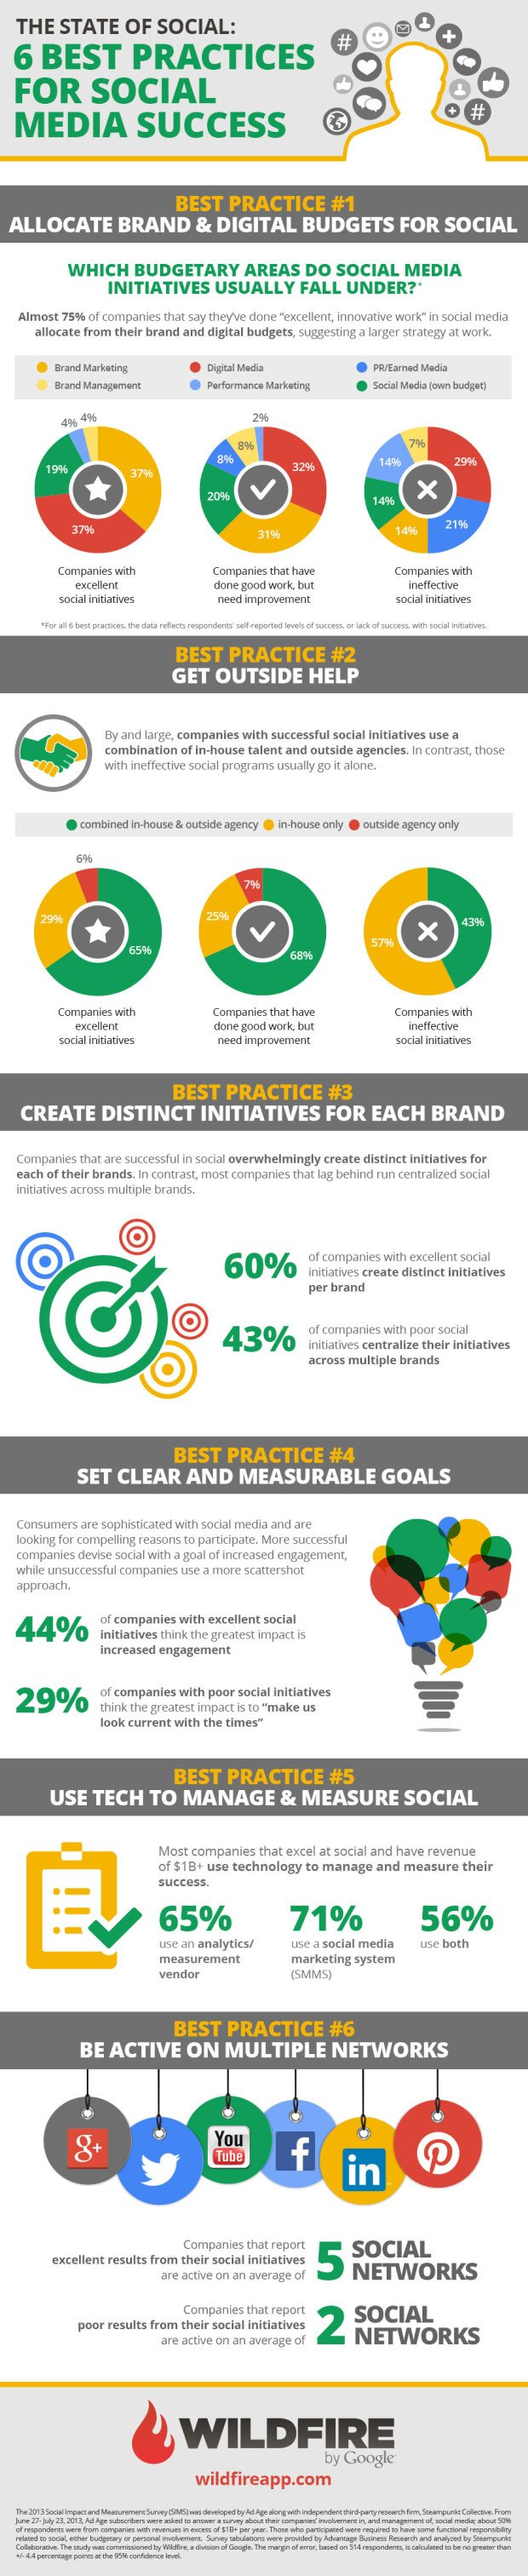 6 Best Practices for Social Media Success Infographic